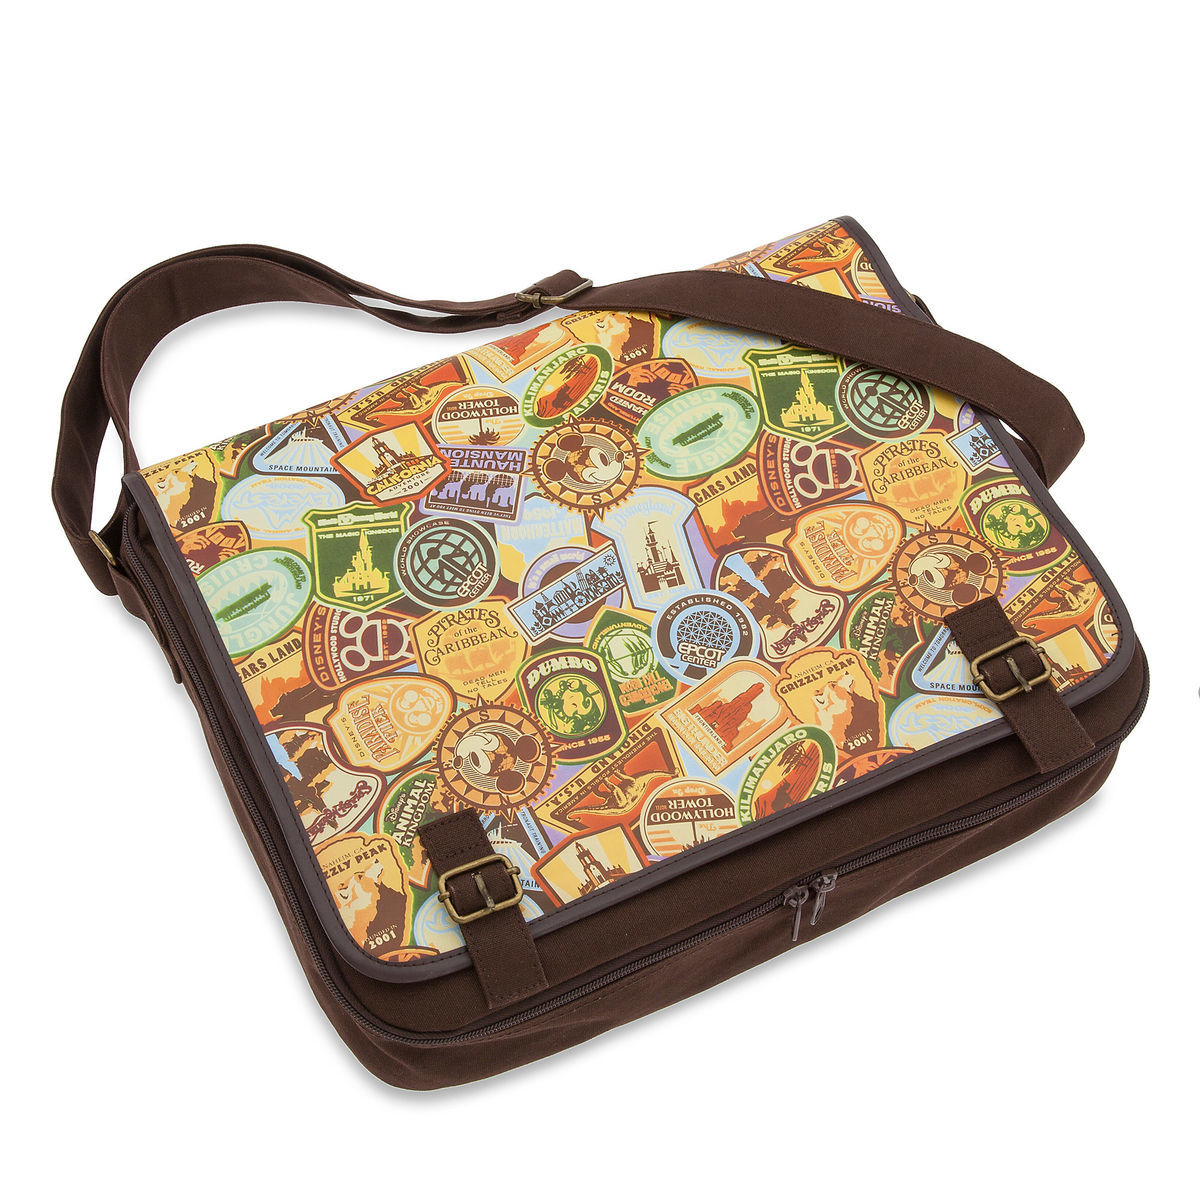 Product Image of Disney Parks Deluxe Pin Trading Bag - Large   1 b620a0442f79b